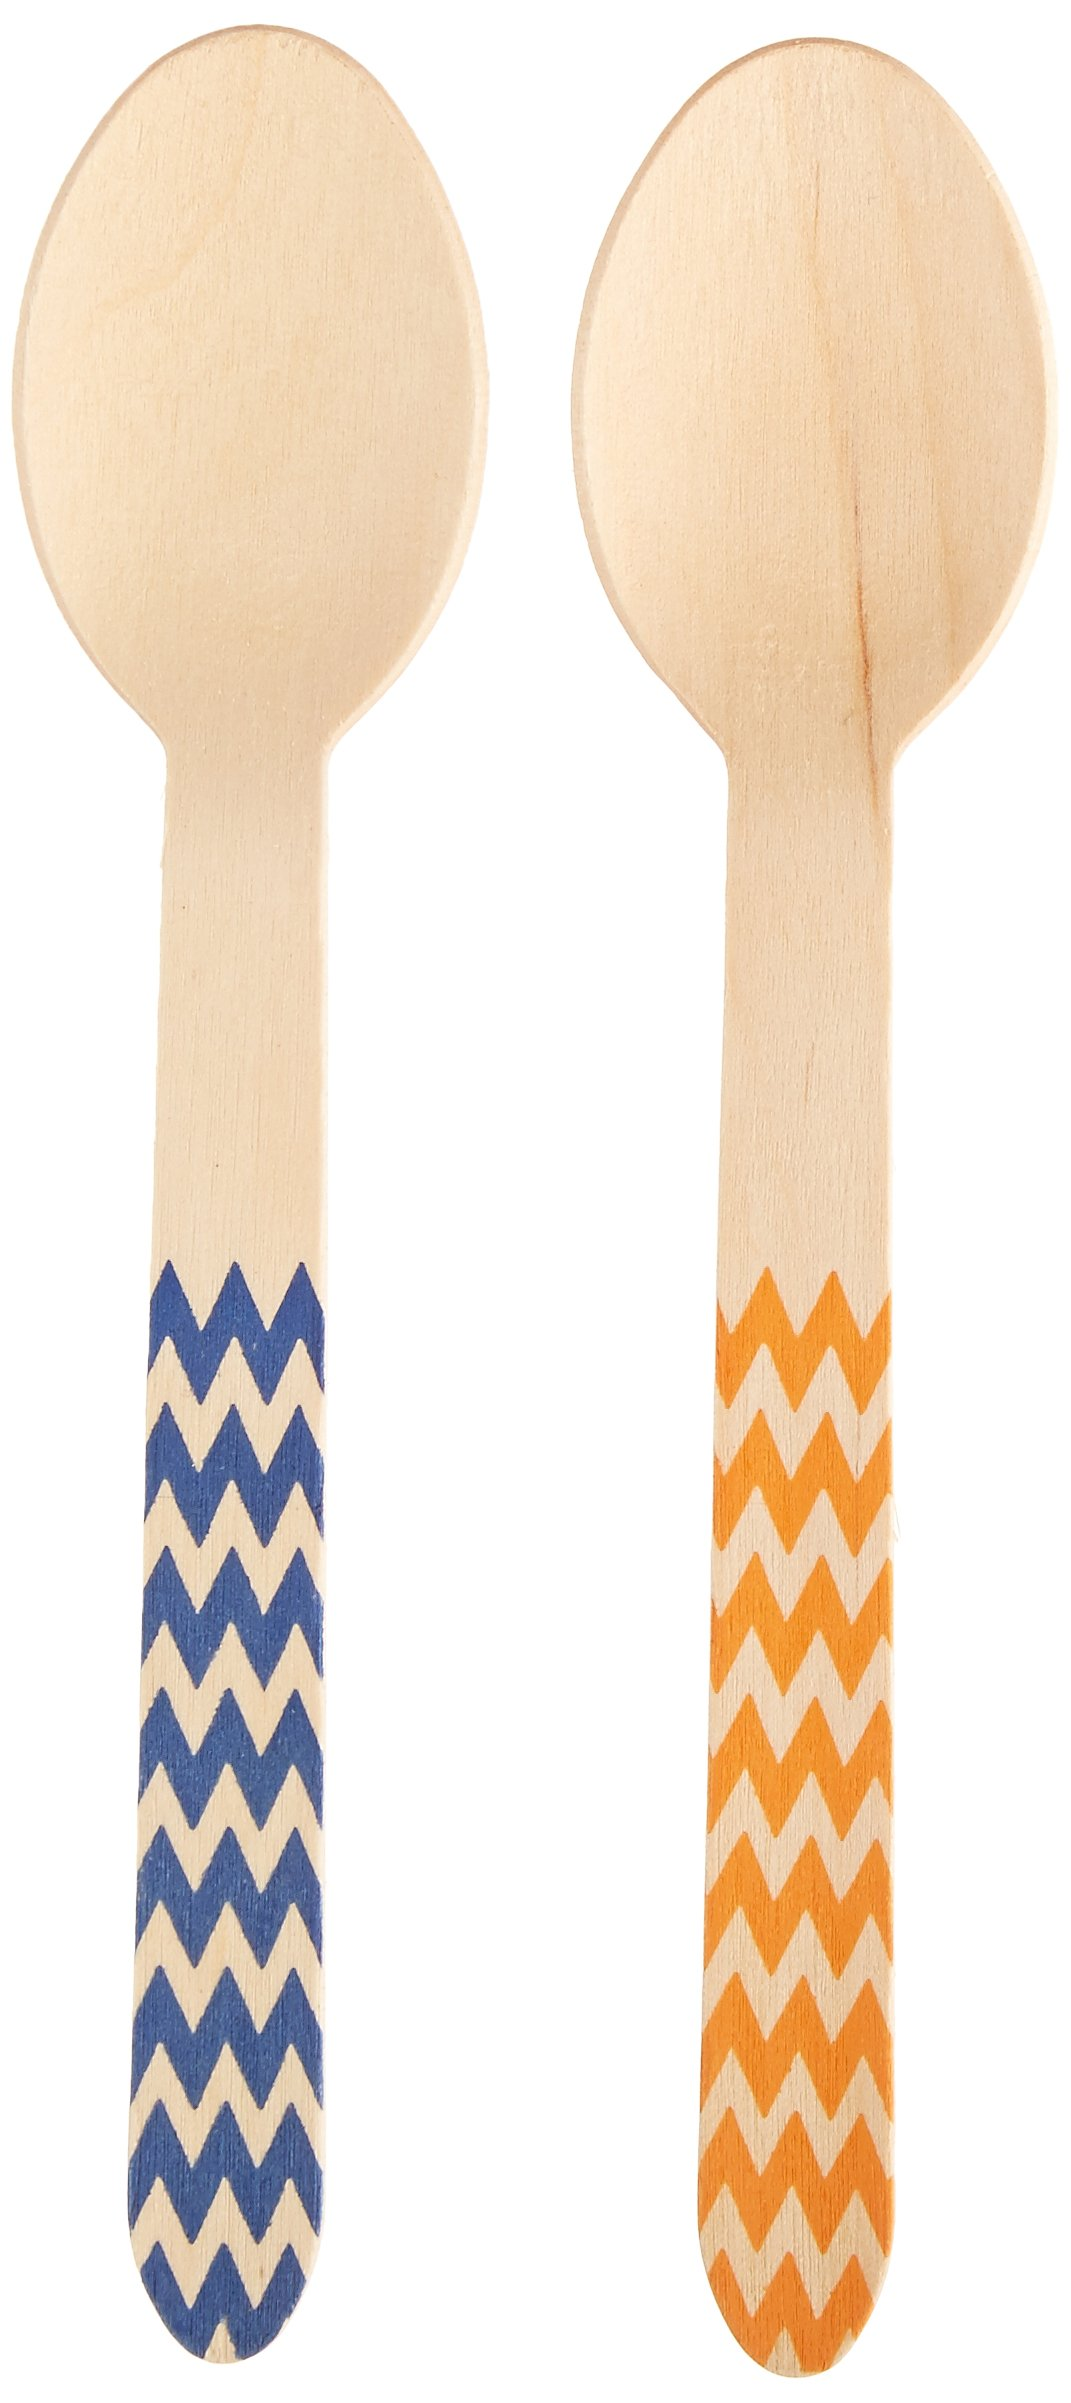 Perfect Stix GDS 158-100 Wooden Disposable Cutlery Spoon, 6'', Printed Game Day Colors (Pack of 100)